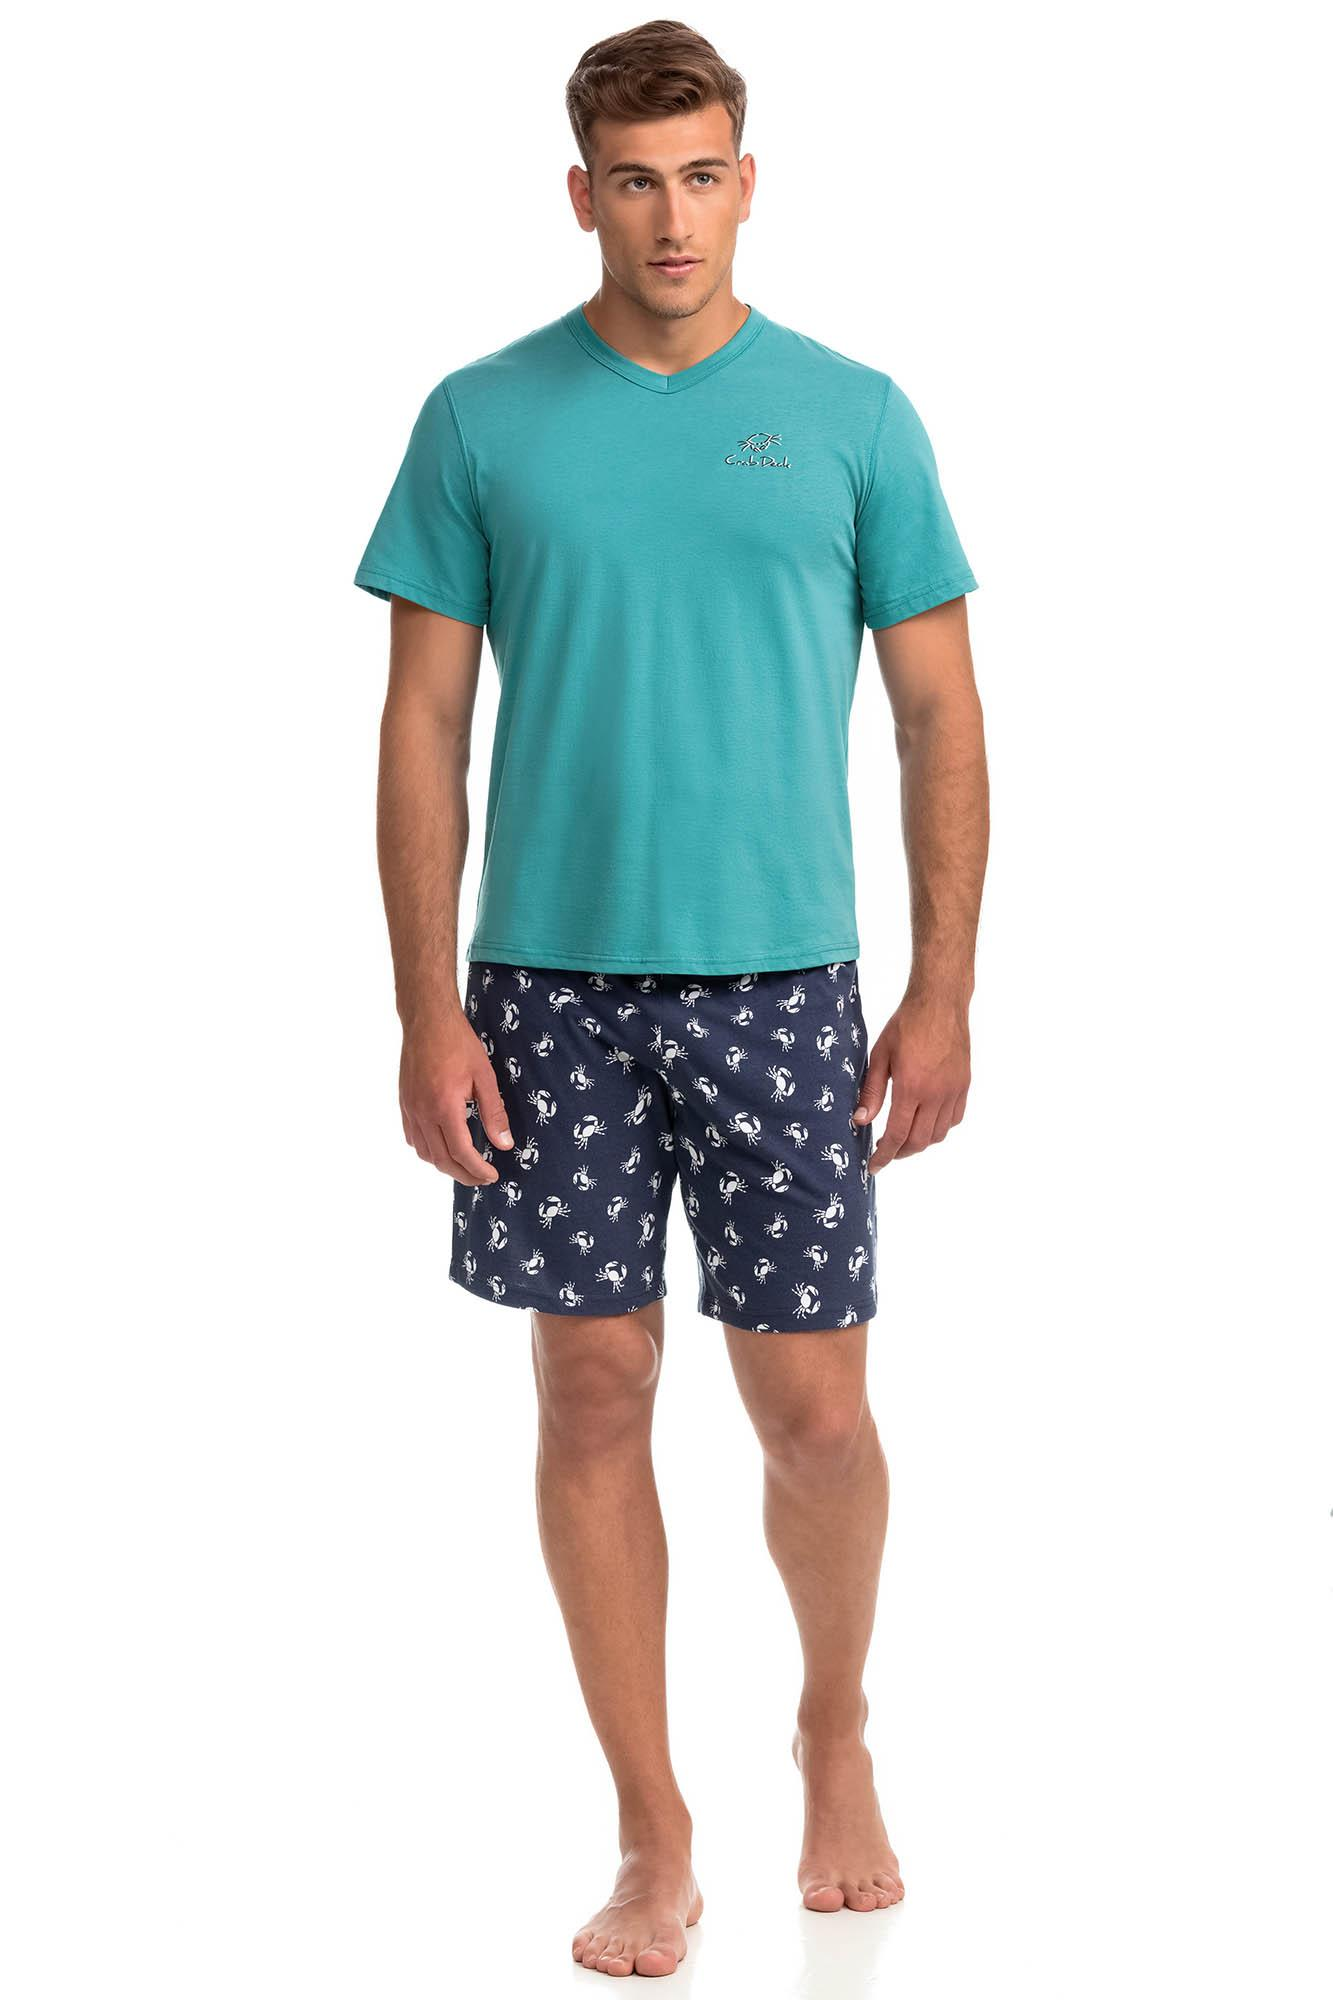 Men's Short-Sleeved Pyjamas